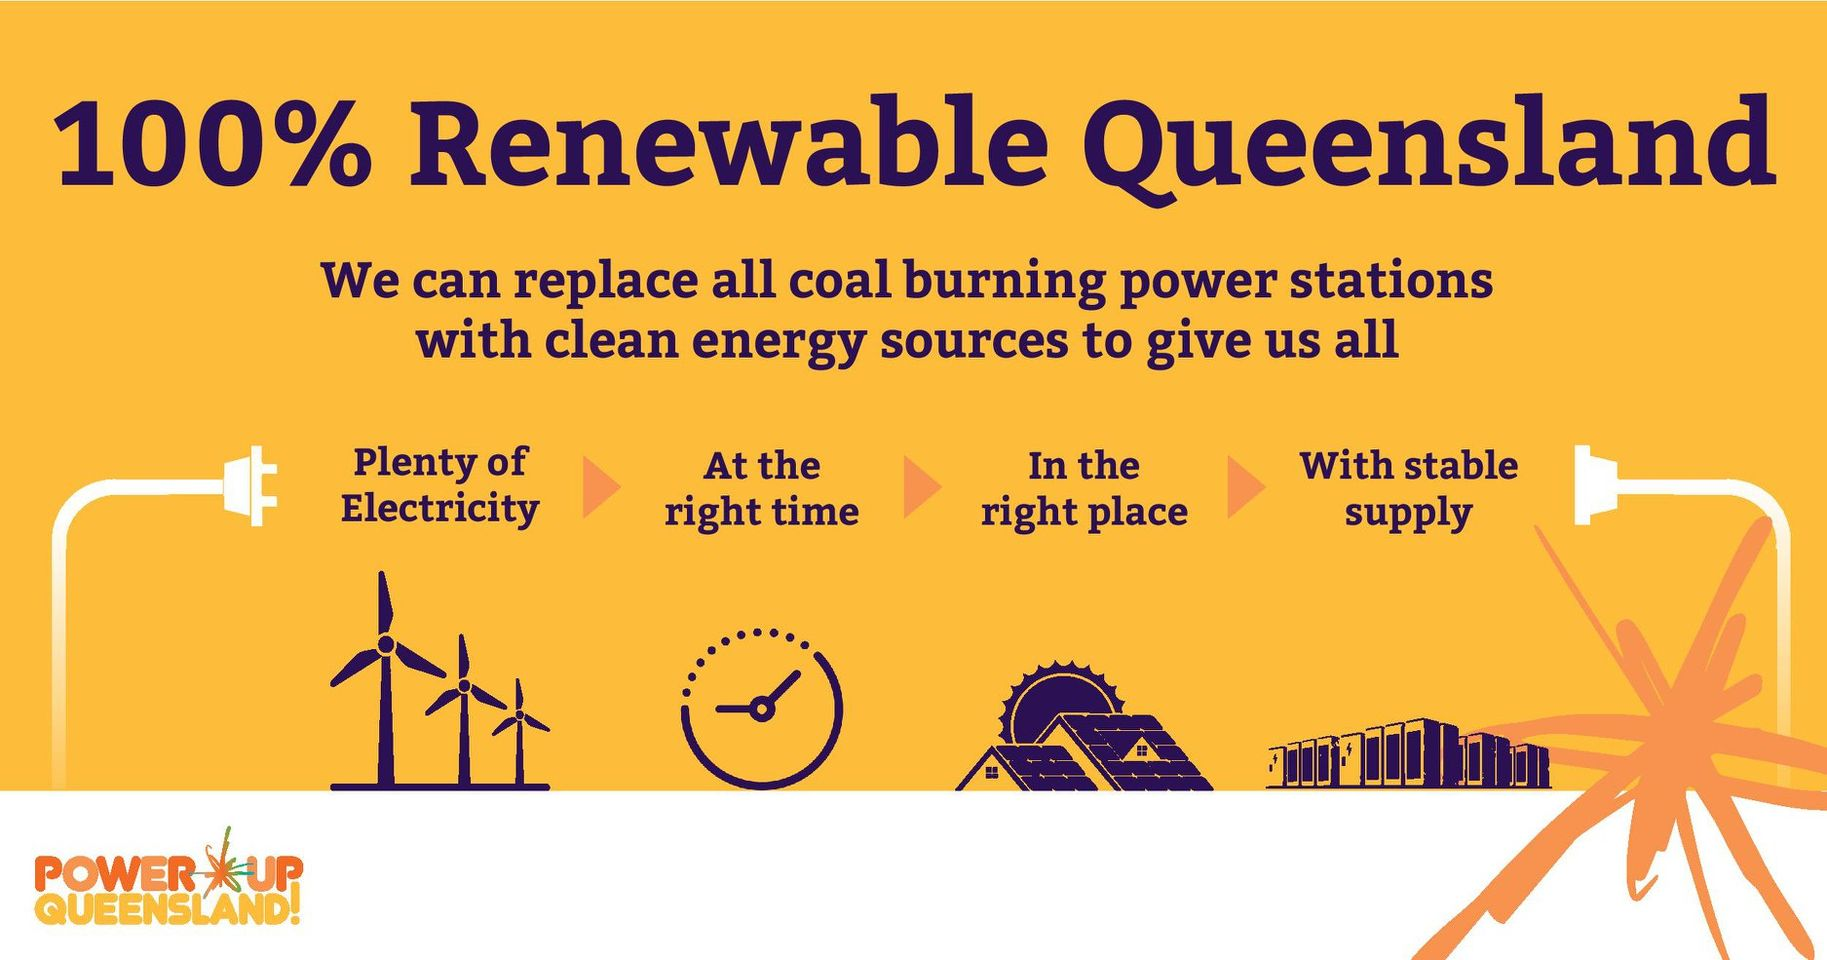 Power Up Qld infographic